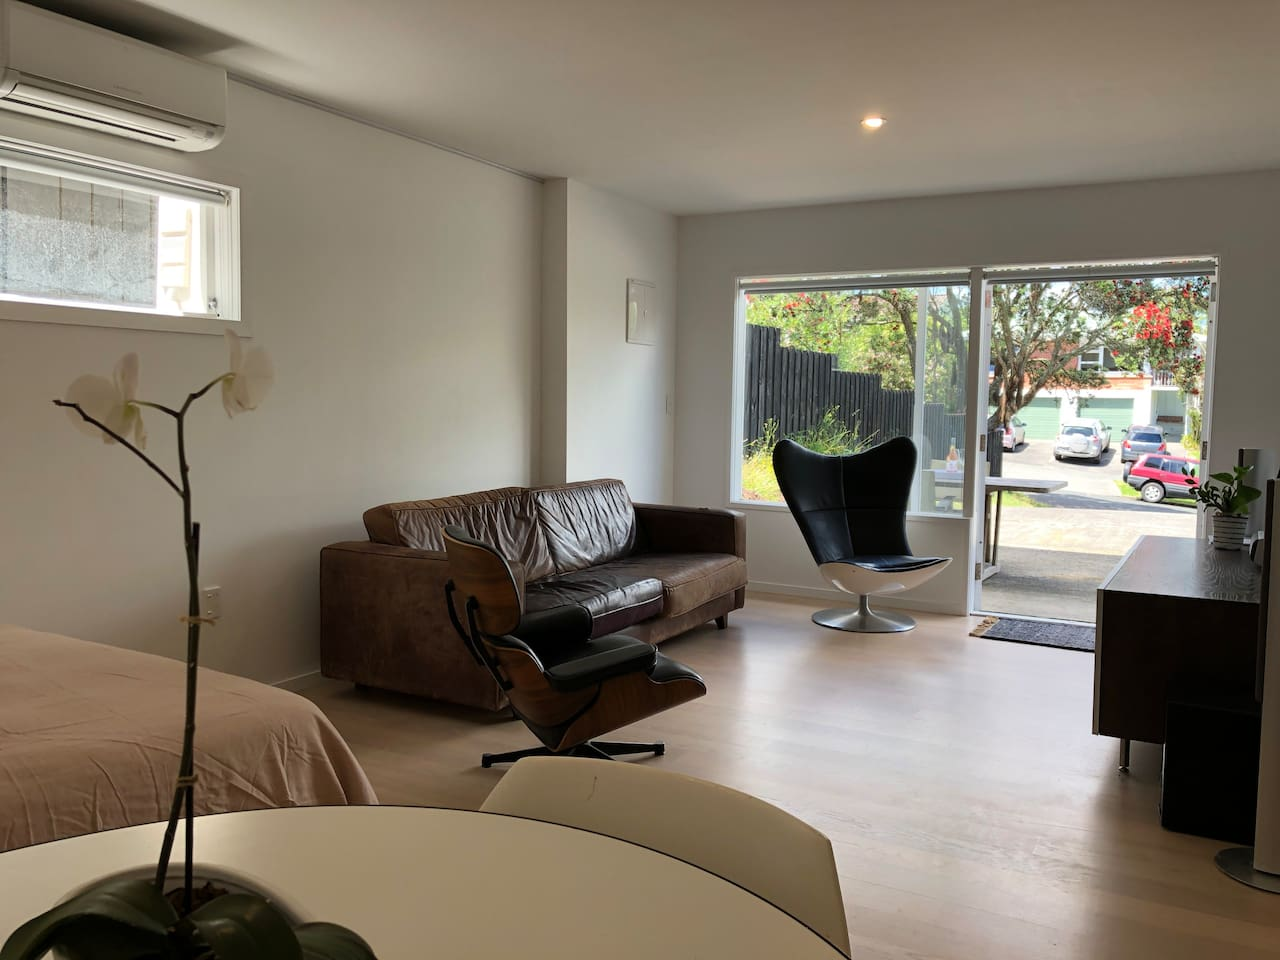 Light Vanilla Oak timber flooring and contemporary furniture enhances an open plan clean, stylish and modern space. Fresh painted walls are insulated to retain the temperature. A heat pump and 'mini-kitchen' serve for ease of function and comfort.